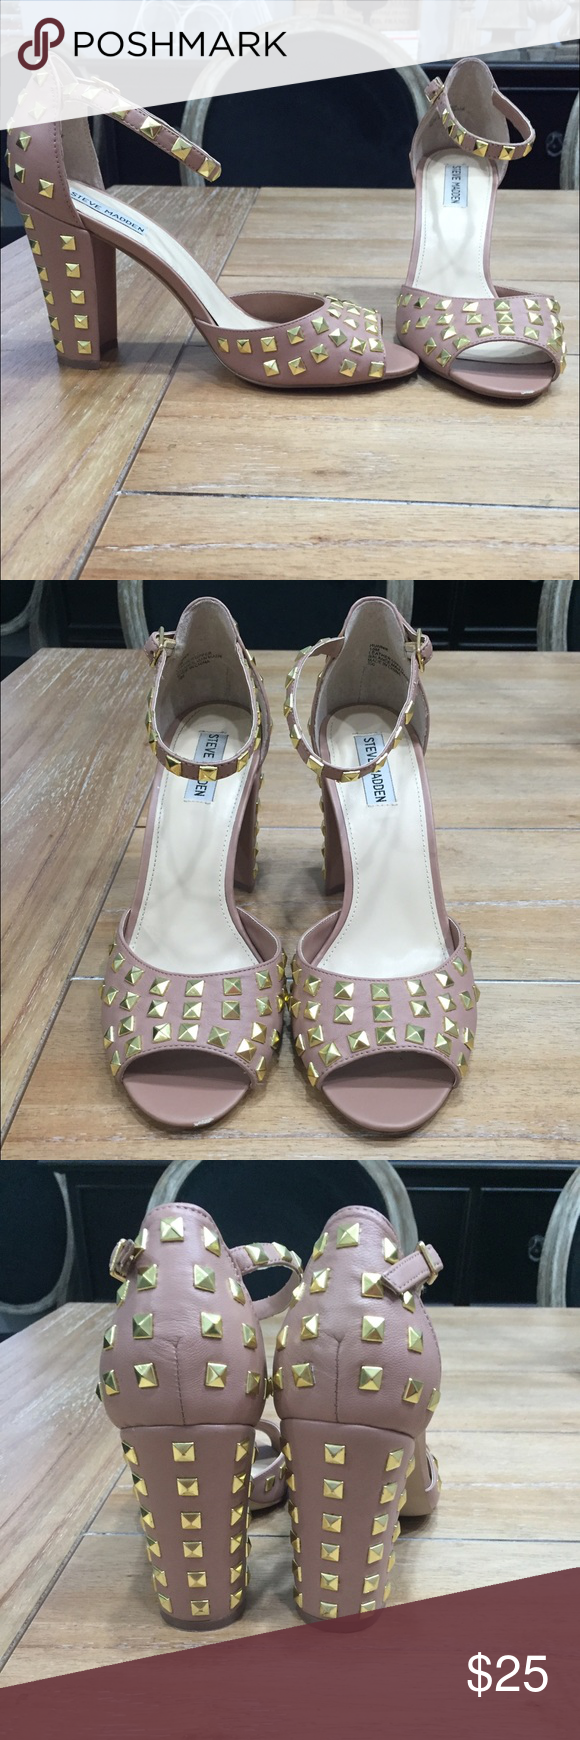 Steve Madden Studded Heels Steve Madden Blush Studded Heels, small scuff on the front of one but they have only born worn once! They are in great condition!! All prices are negotiable but please use the OFFER button in order to make me a different offer. I will do bundles just let me know what you are interested in but NO trades  Steve Madden Shoes Heels